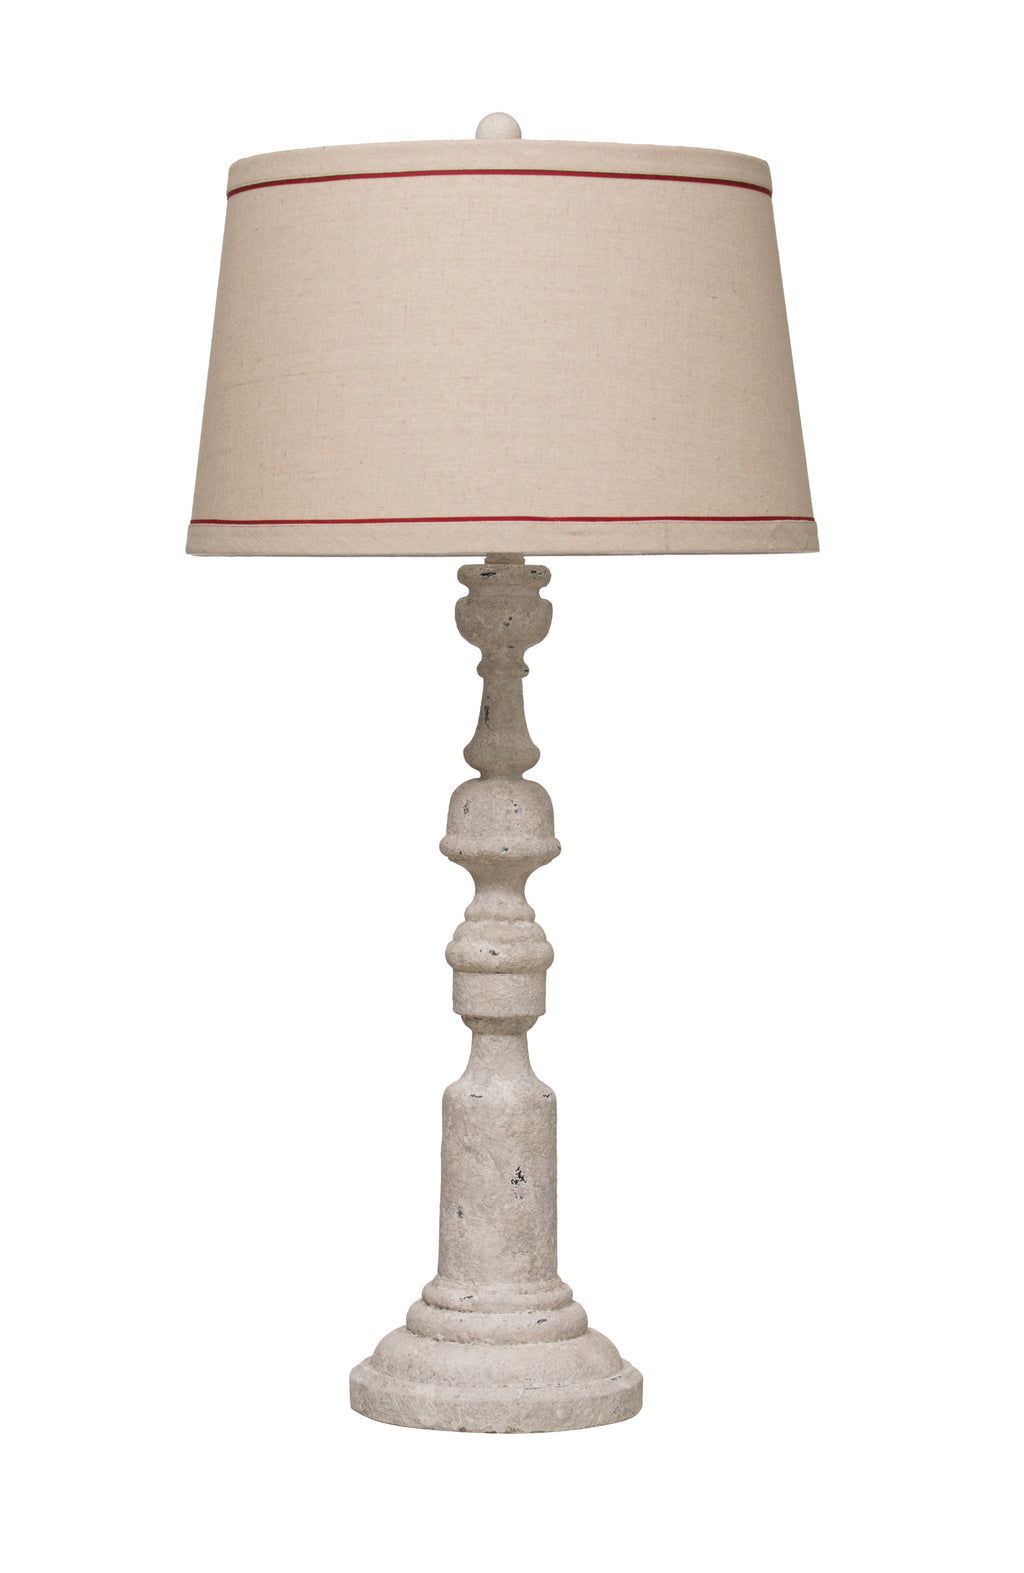 Resin Table Lamp with Distressed Antique Finish and Linen Shade